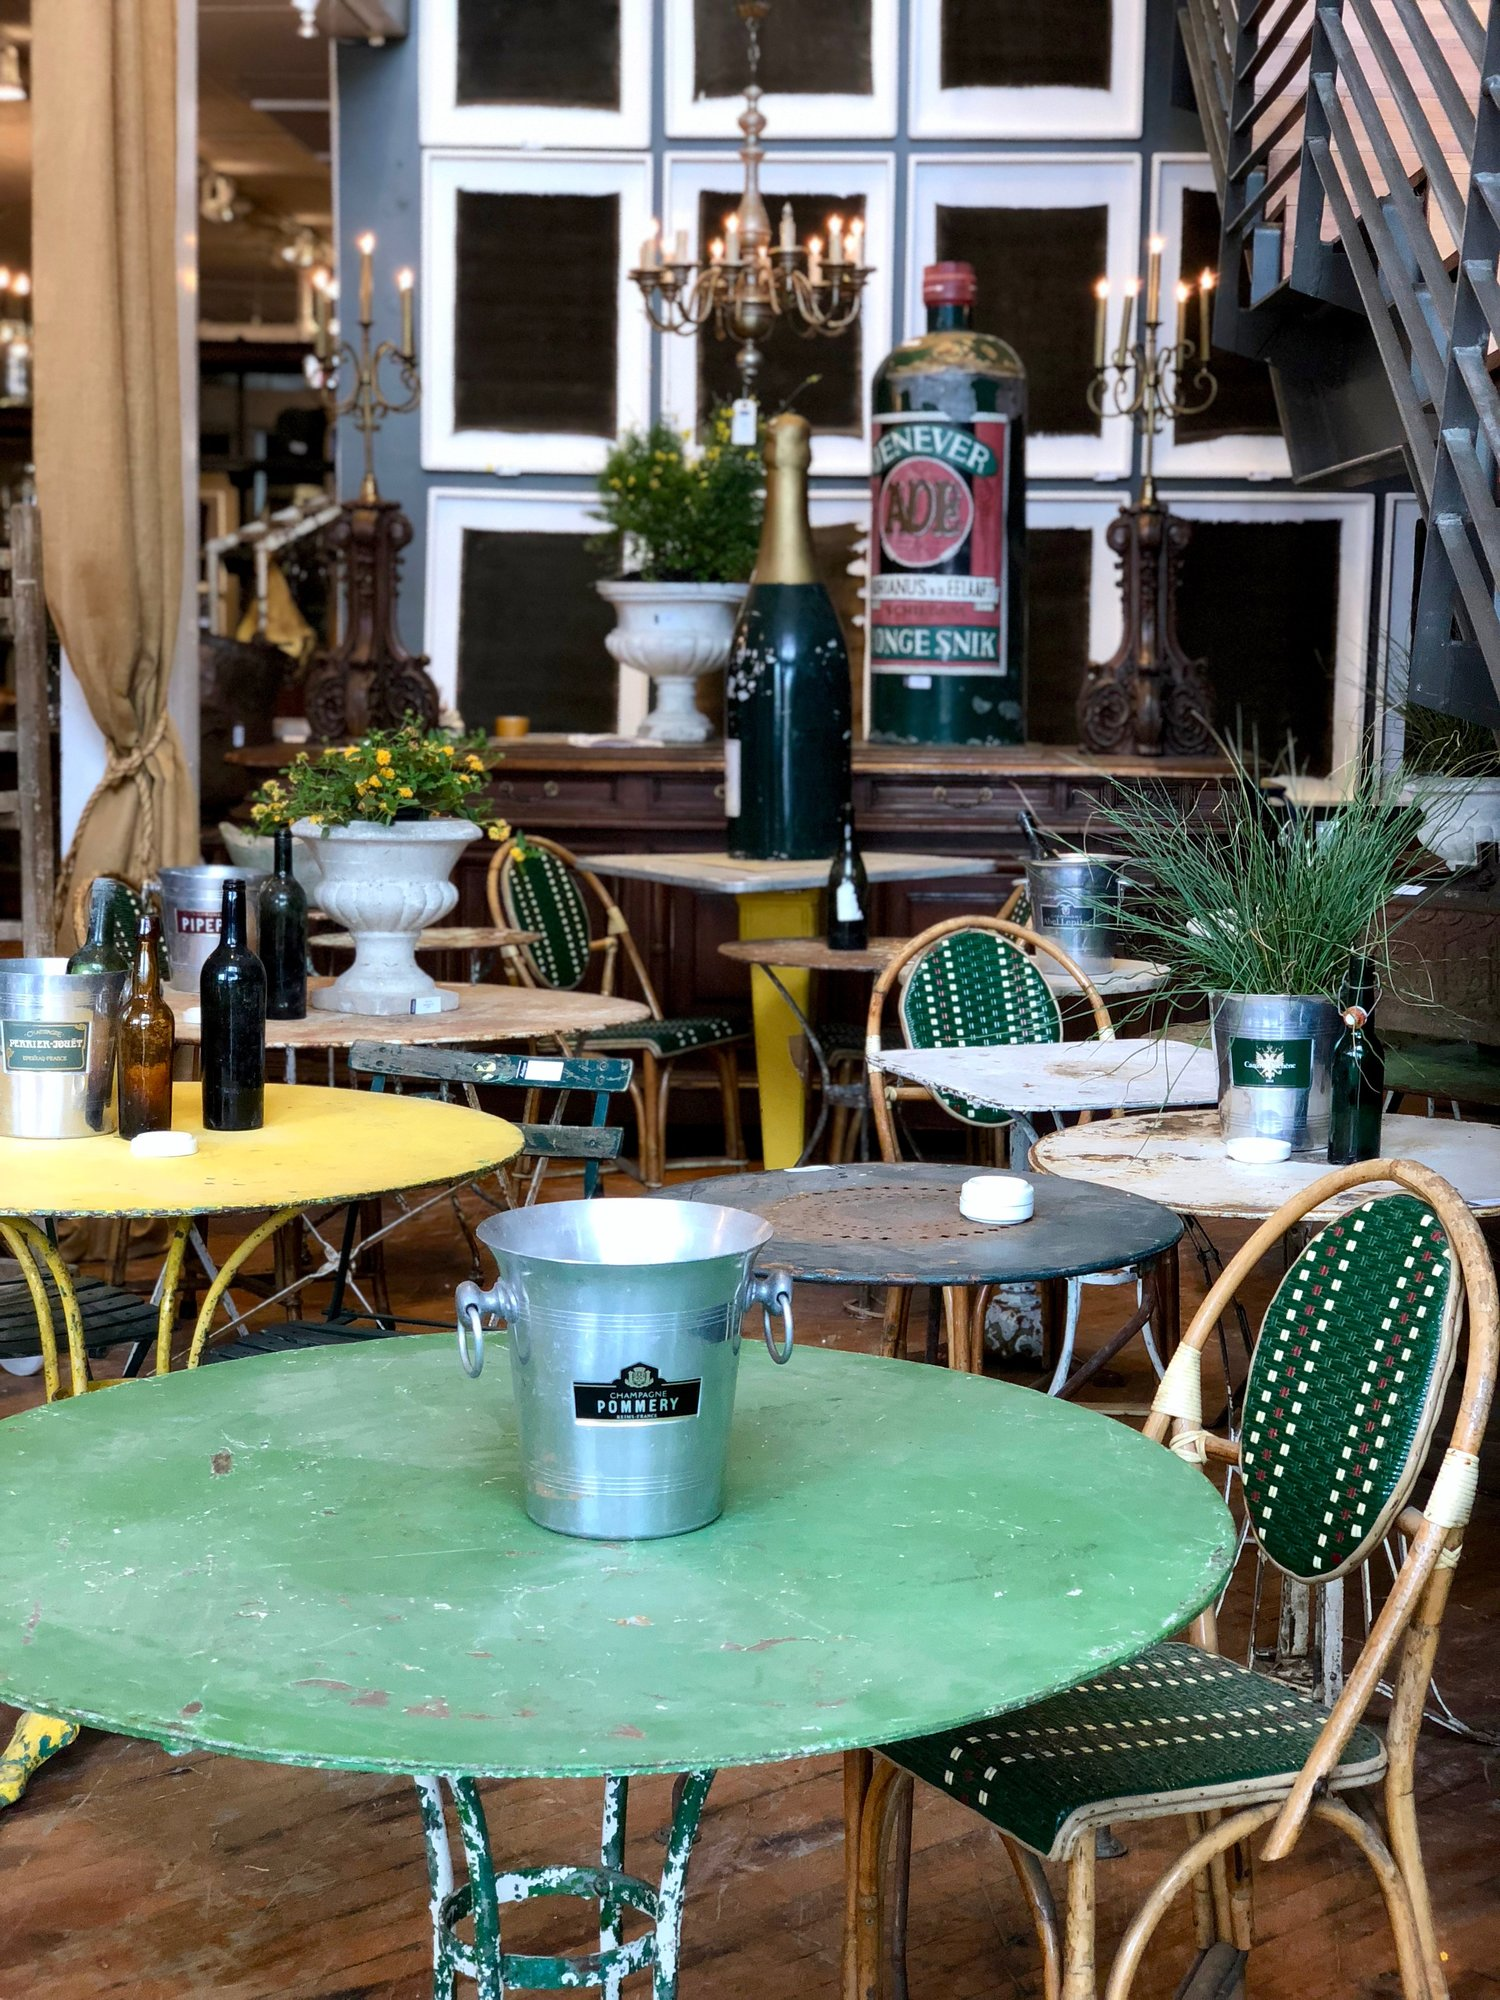 Bistro inspiration overload -- the planters on tables, green chairs, endless character -- why has color become such a naughty word in interiors?  I miss it!  Let's all agree to bring back color.